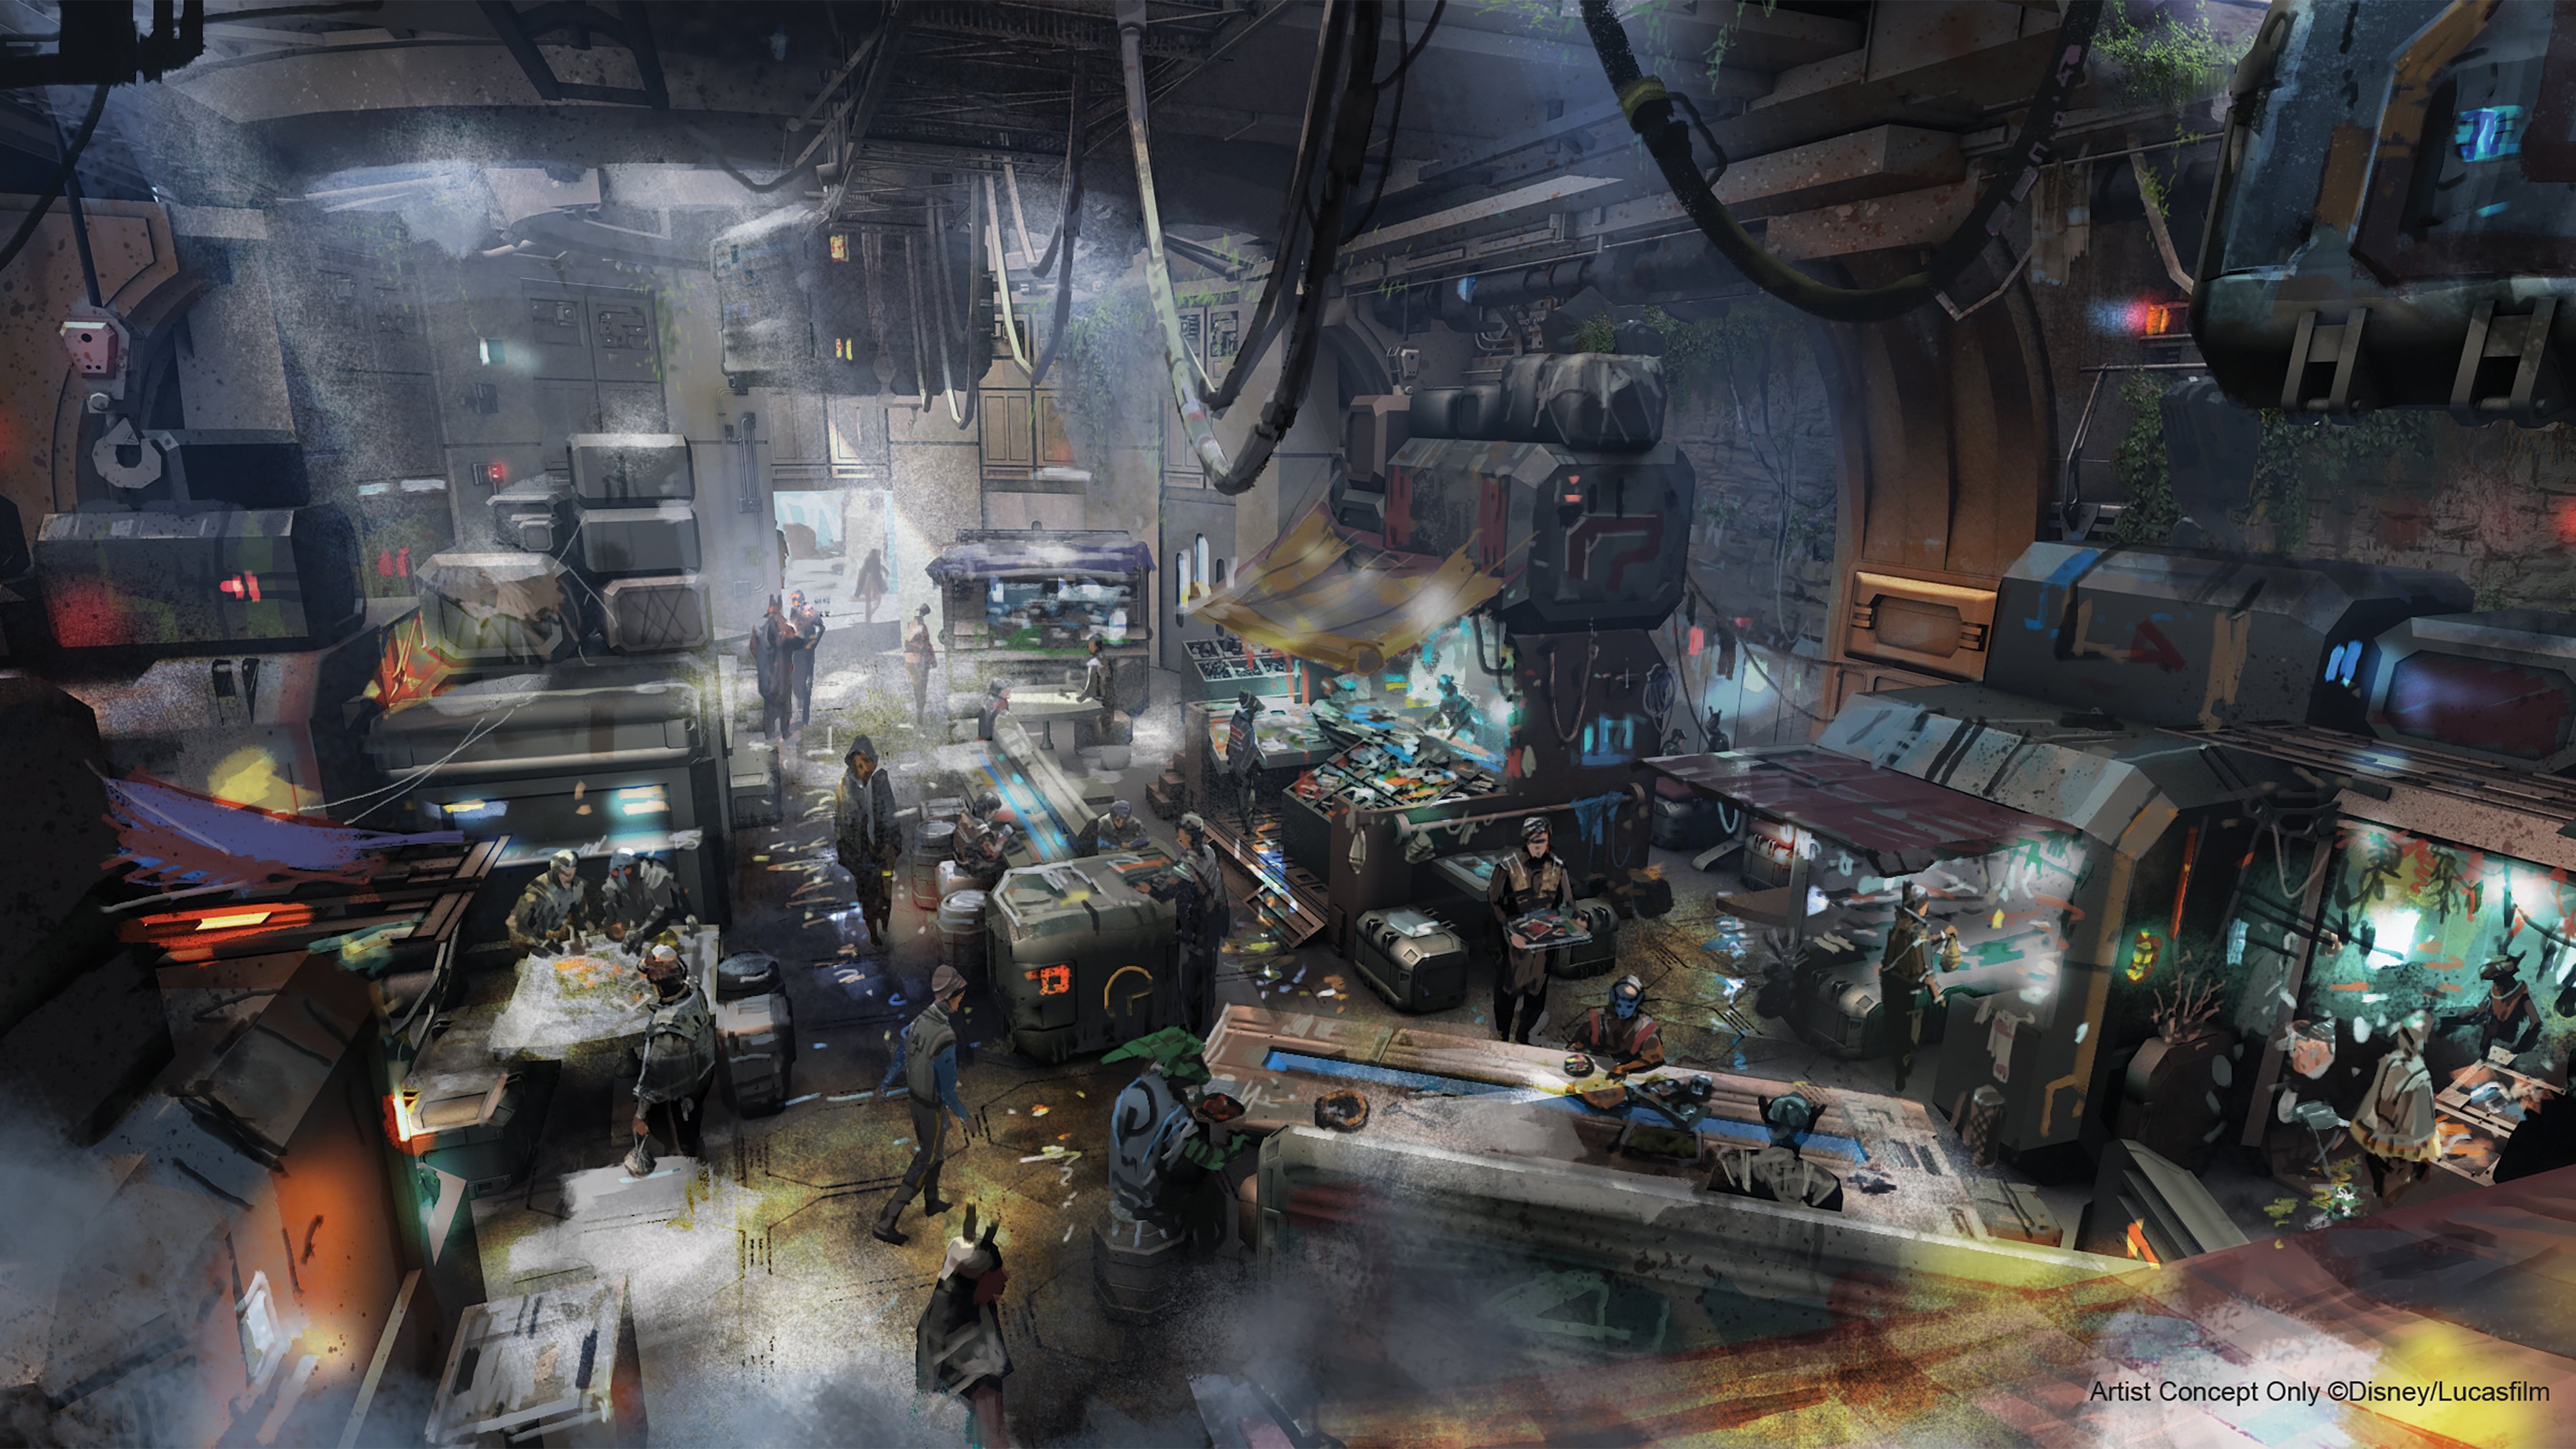 Docking Bay 7 Food and Cargo concept art